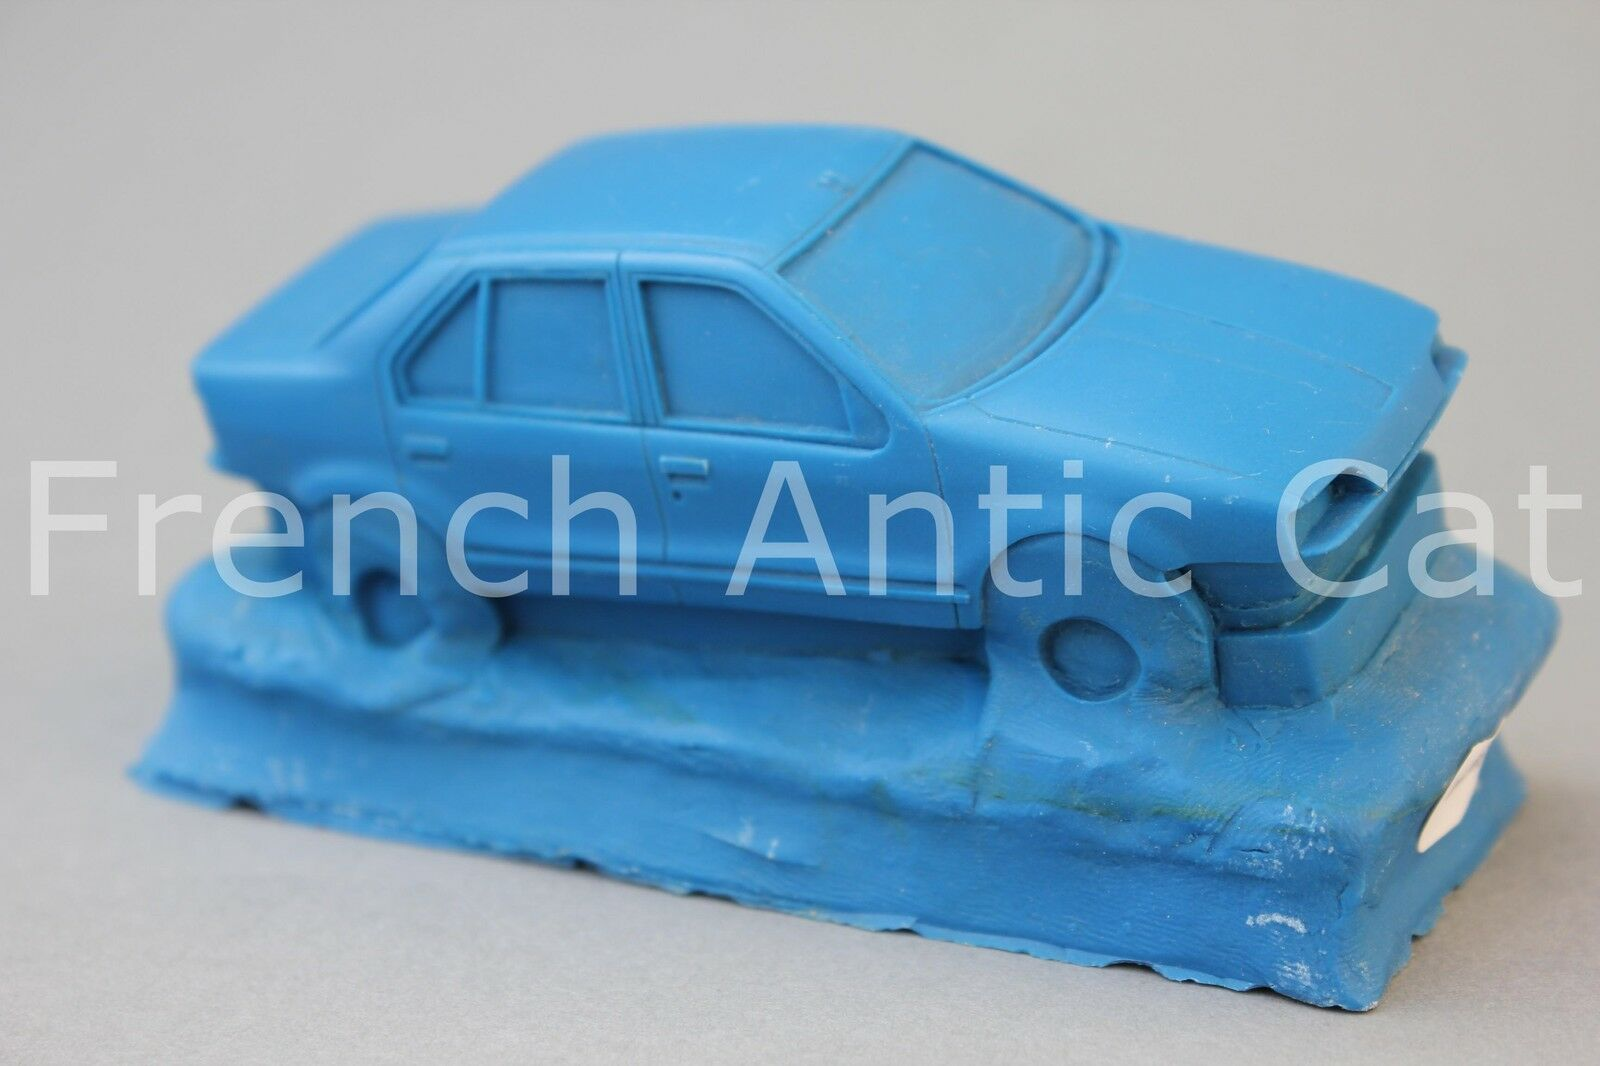 Rare Mold Die Resin Renault 19 Chamade 1 4 4 4 Doors 1 43 Heco Models MG 0d1893